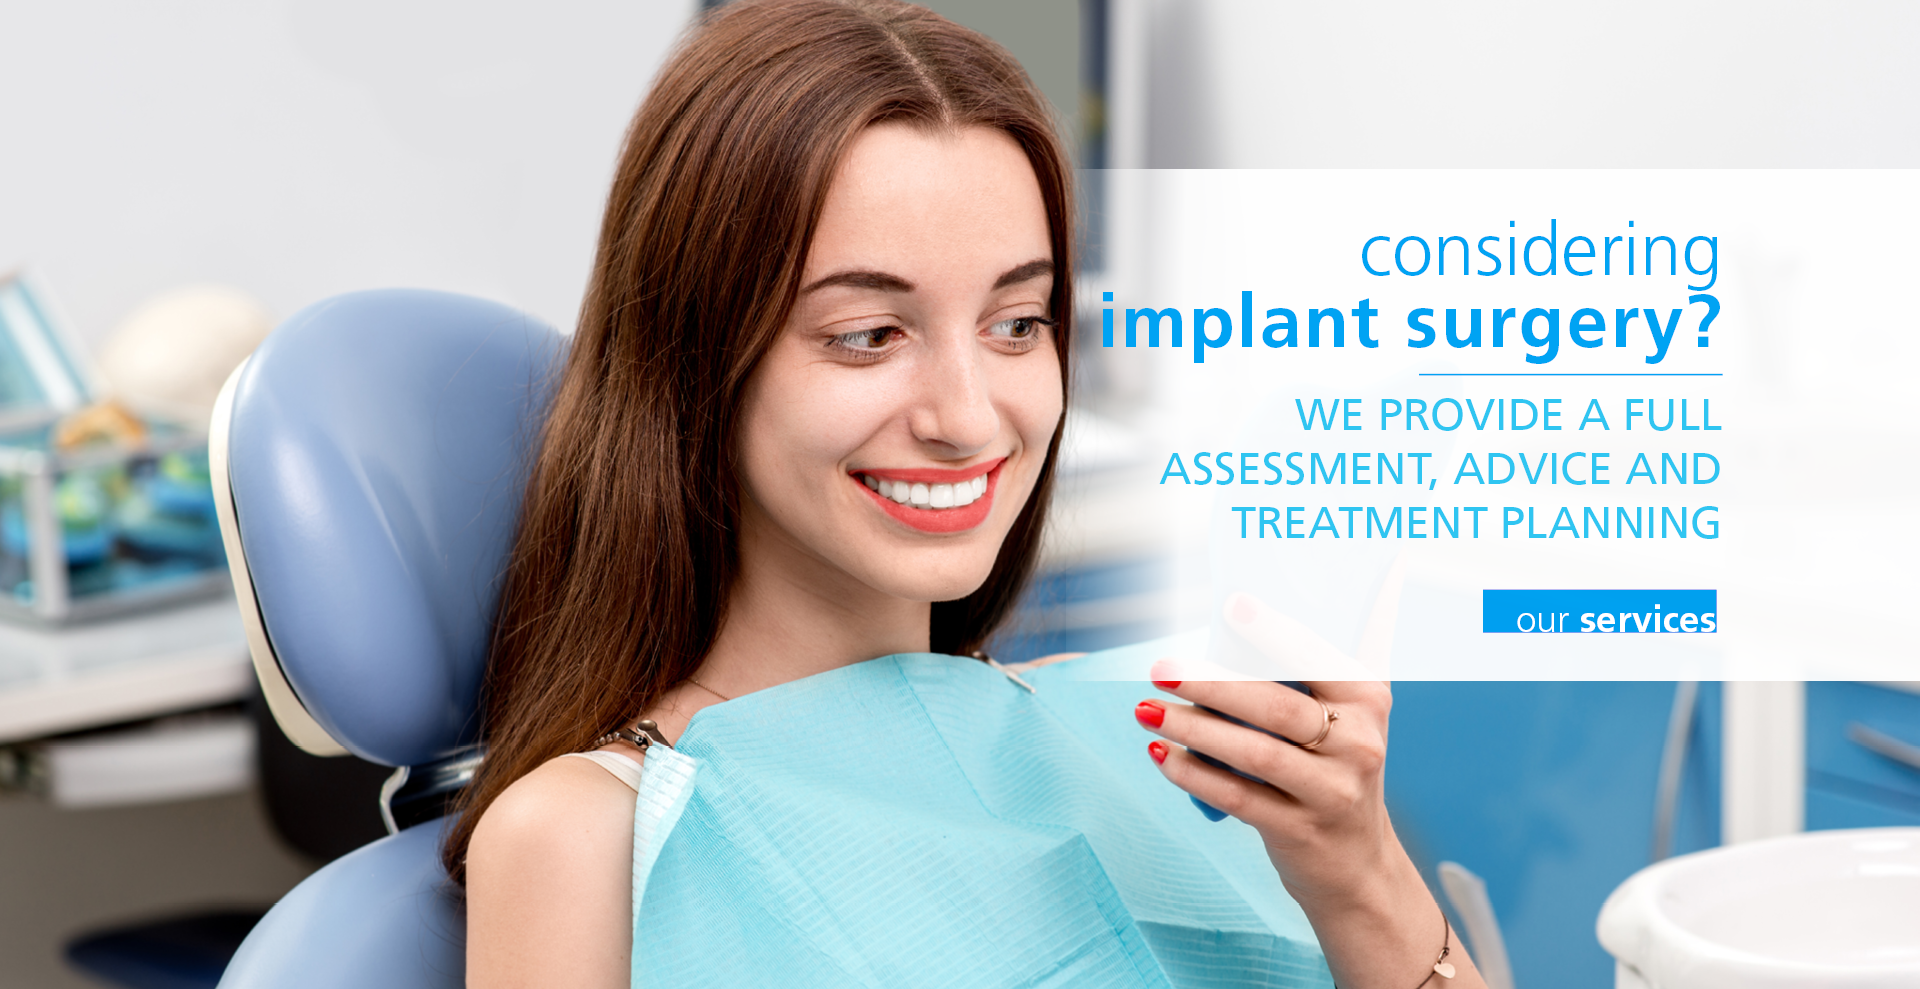 COnsidering implant surgery? We prvide a full assessment, advice and treatment planning. Our services.